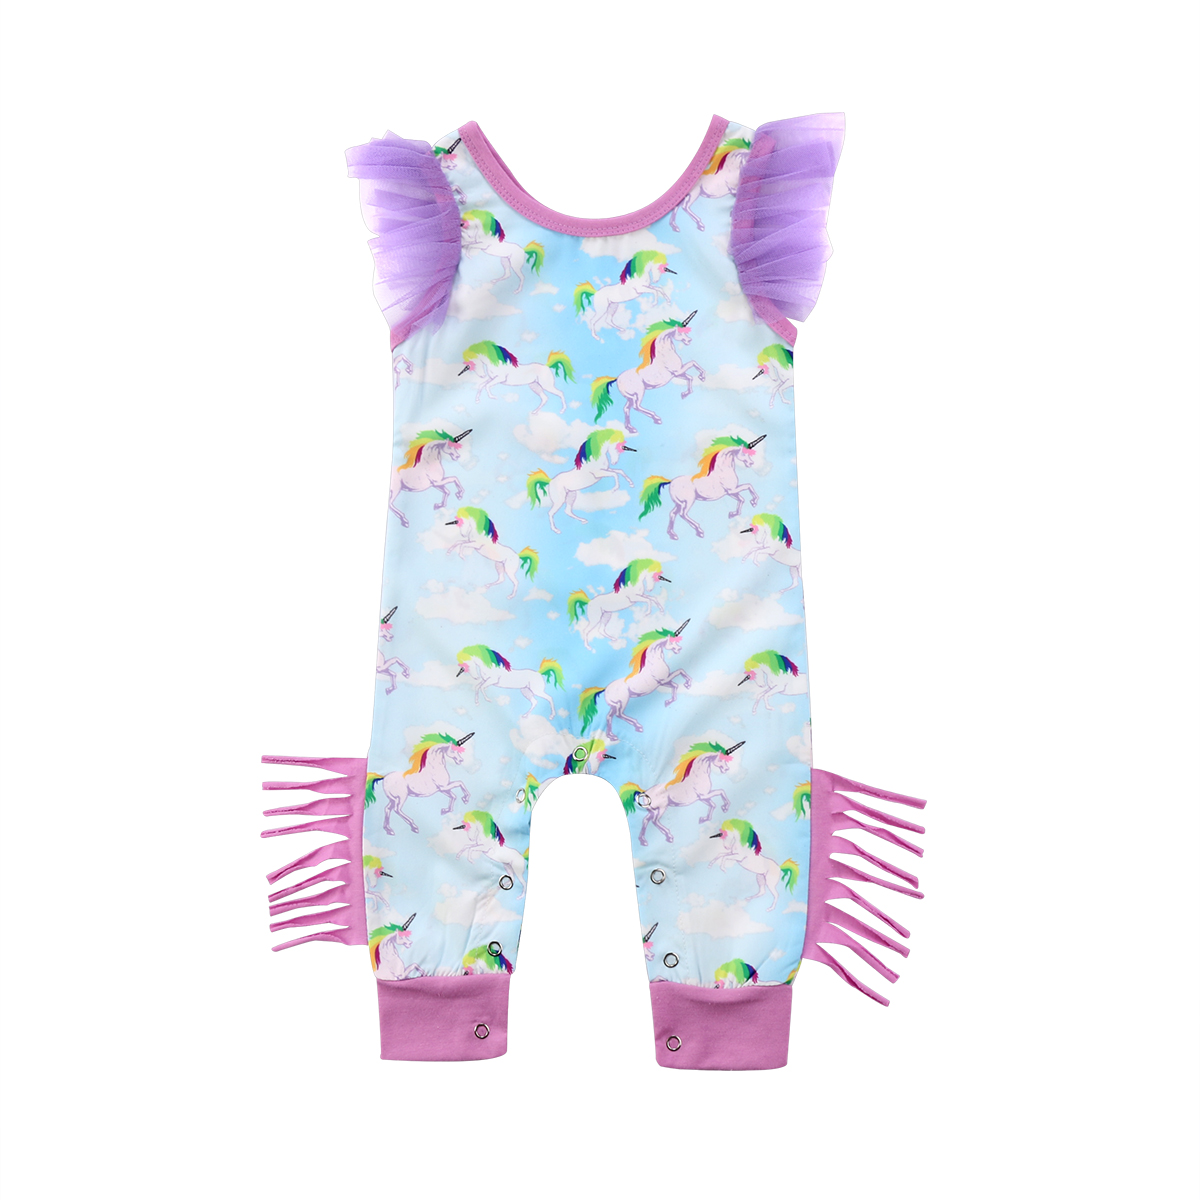 New Style Infant Baby Girls Clothes Short Sleeve Floral Unicorn Romper Jumpsuit Outfits Cotton Clothes